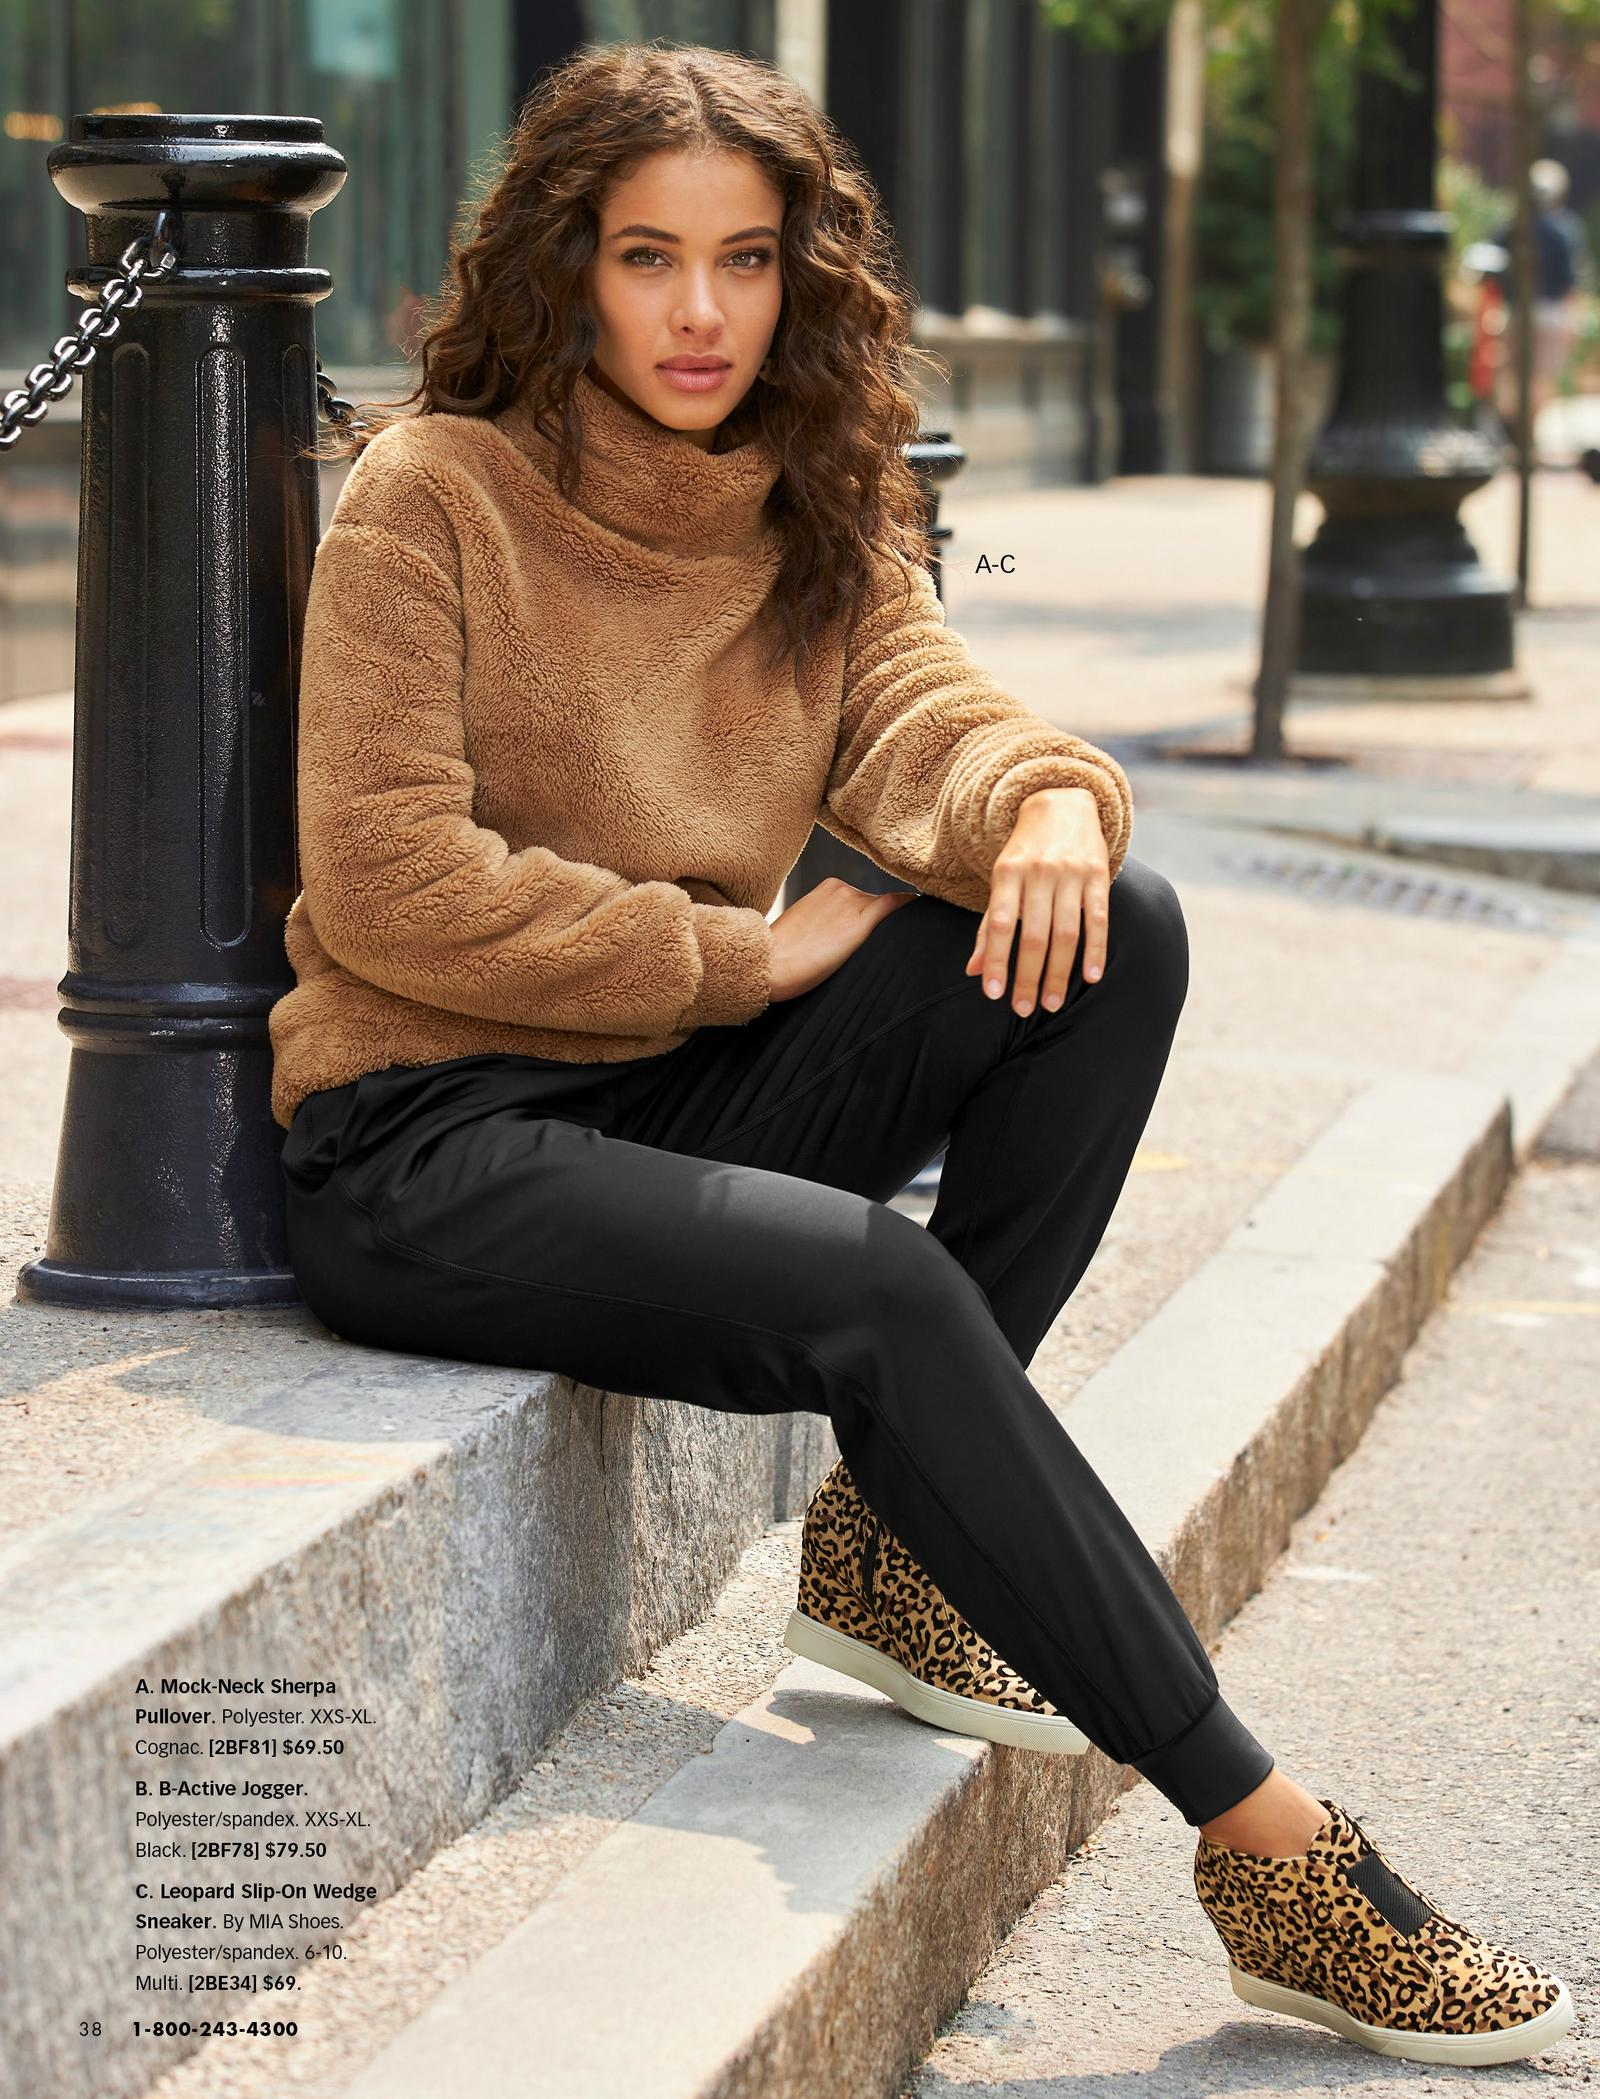 model wearing a tan mock-neck sherpa pullover, black joggers, and leopard slip-on wedge sneakers.